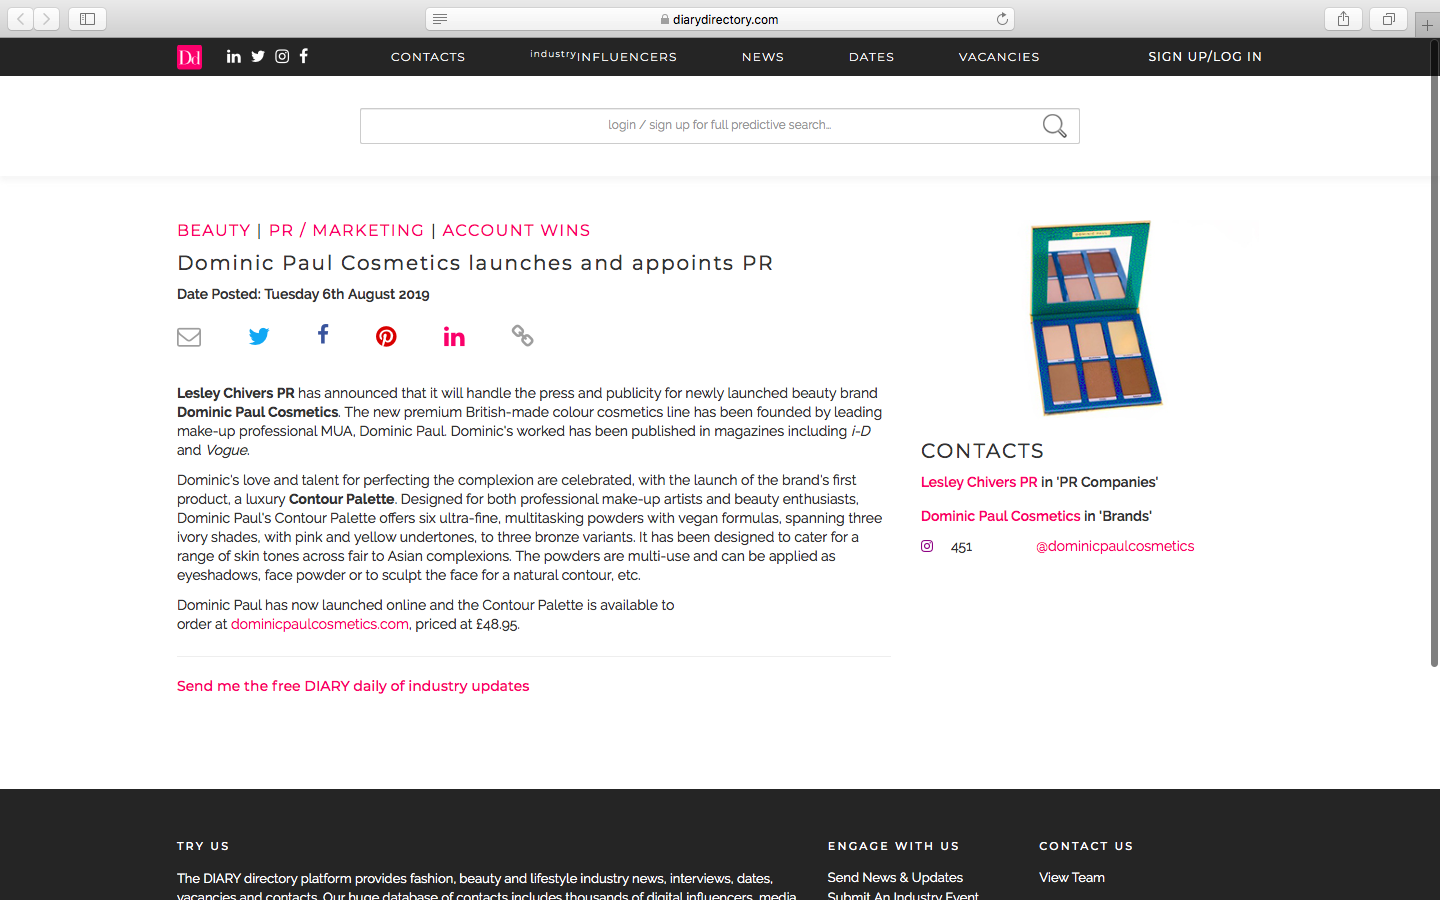 Diary Directory | Dominic Paul Cosmetics launches and appoints PR